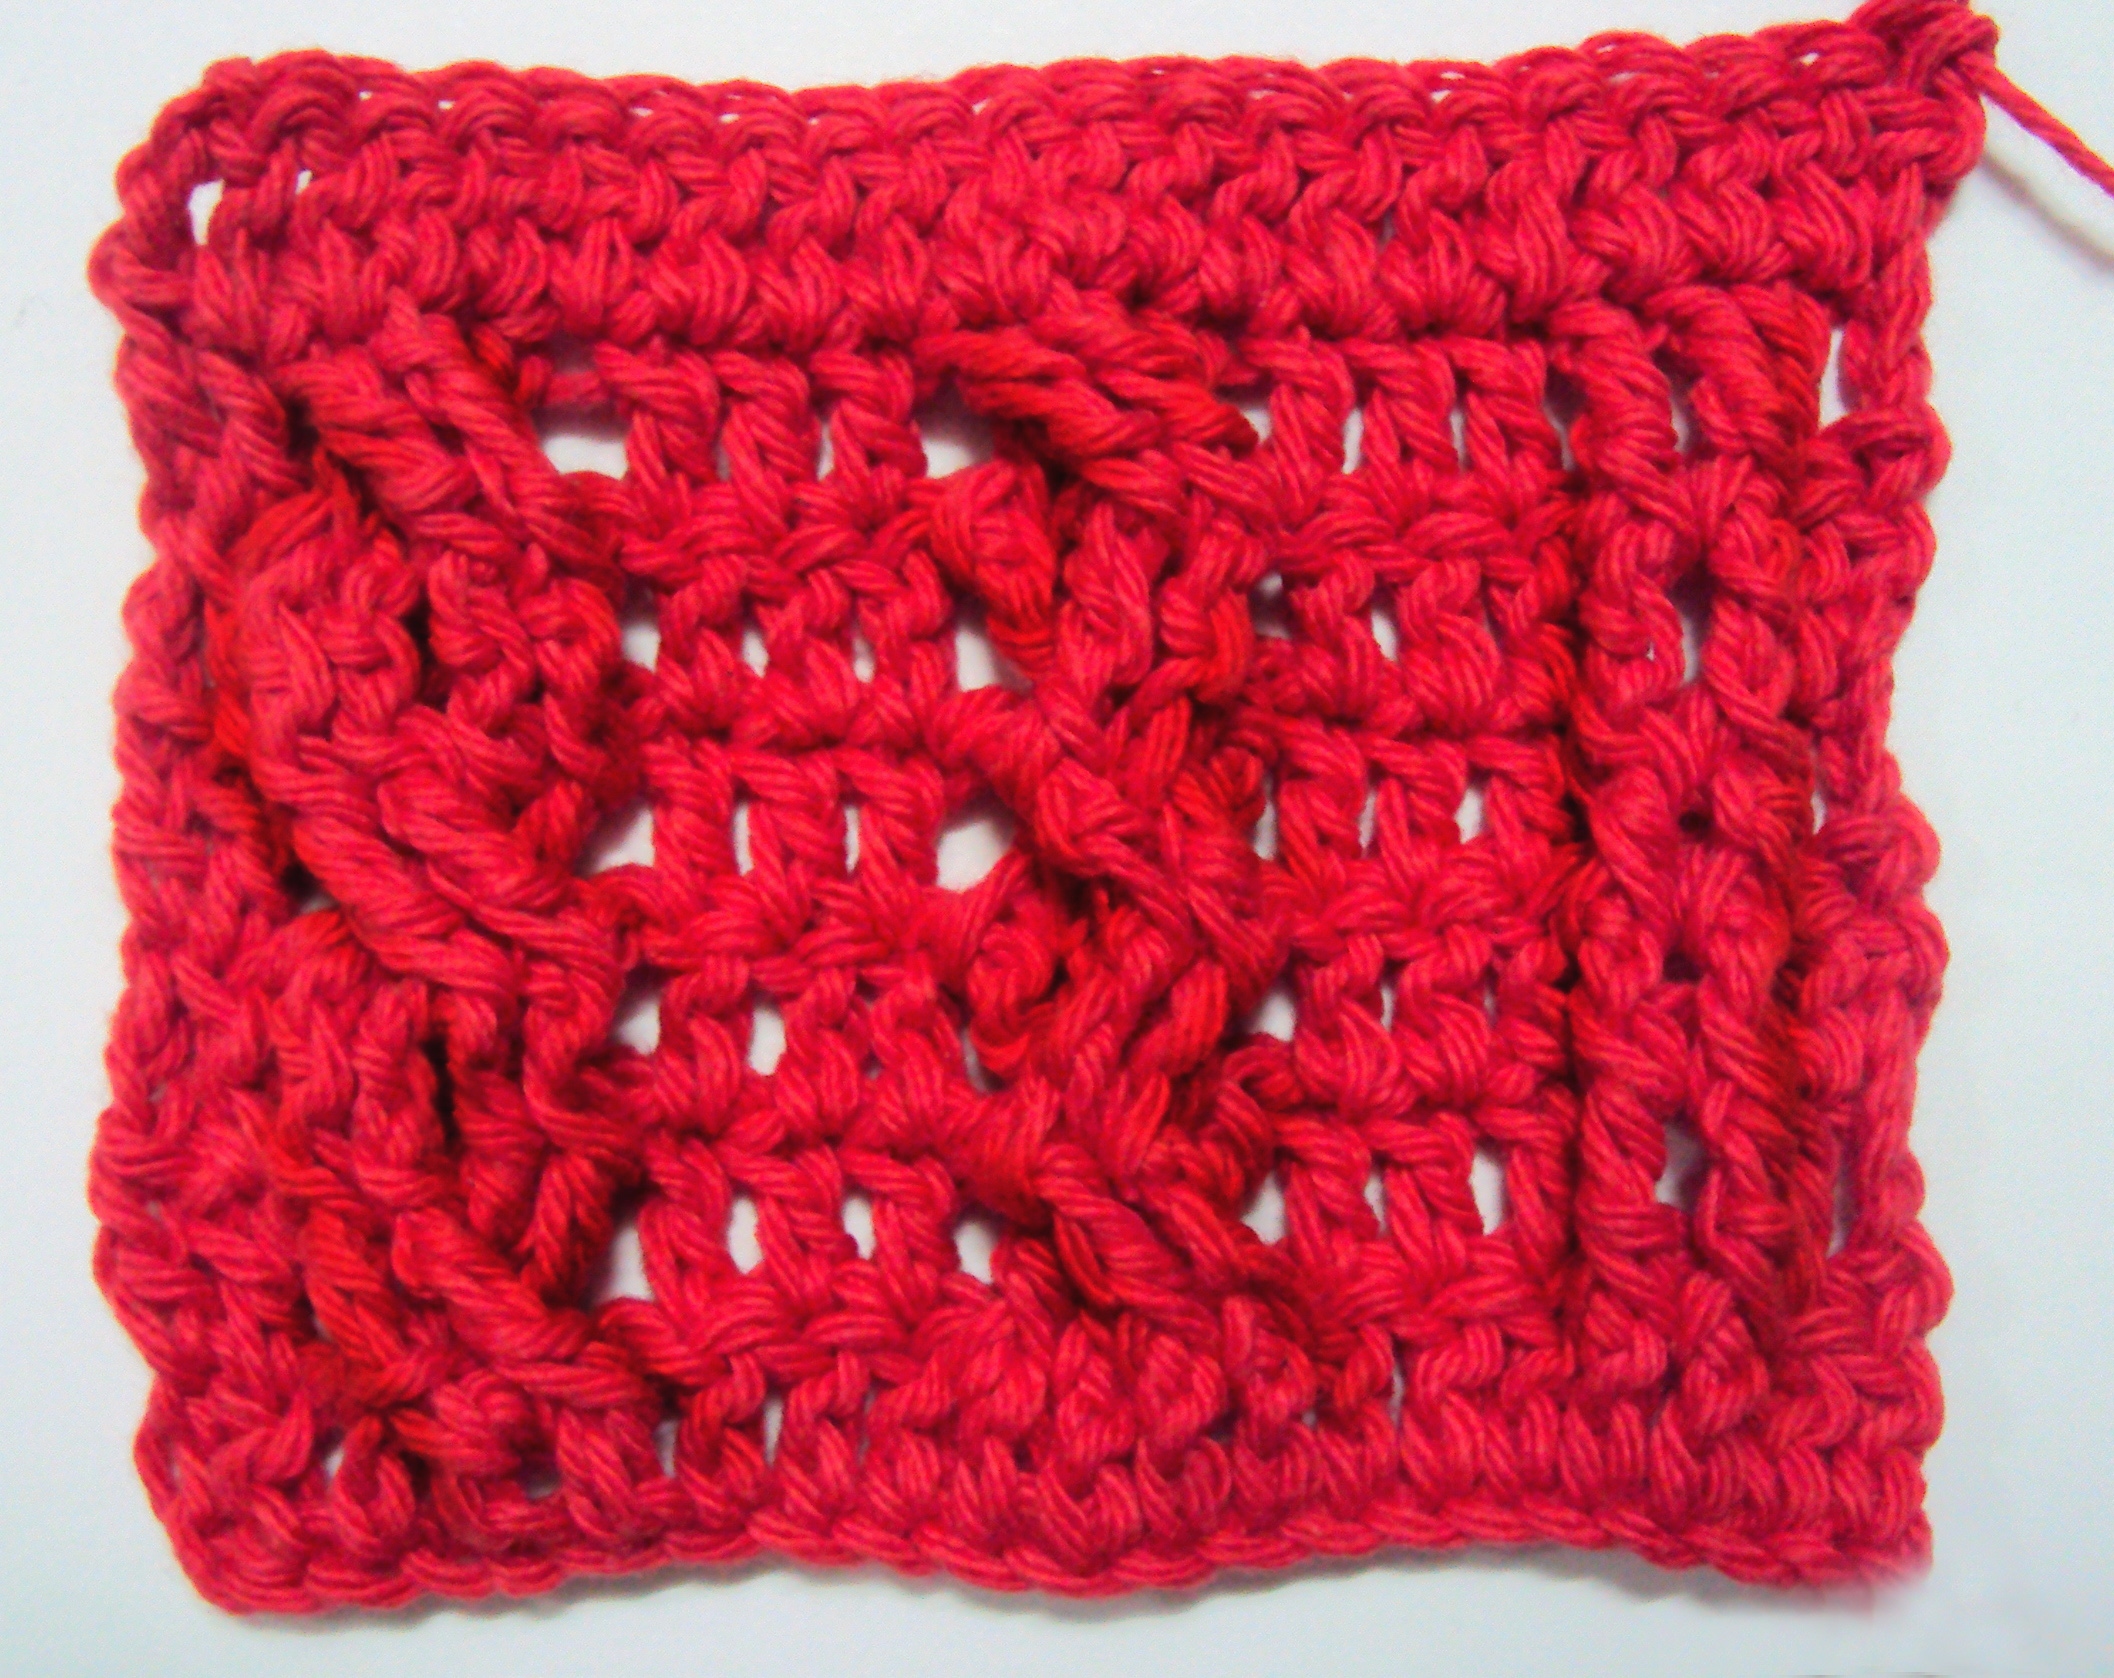 ... How to Crochet: Cable Stitches - Crochet Patterns, Tutorials and News